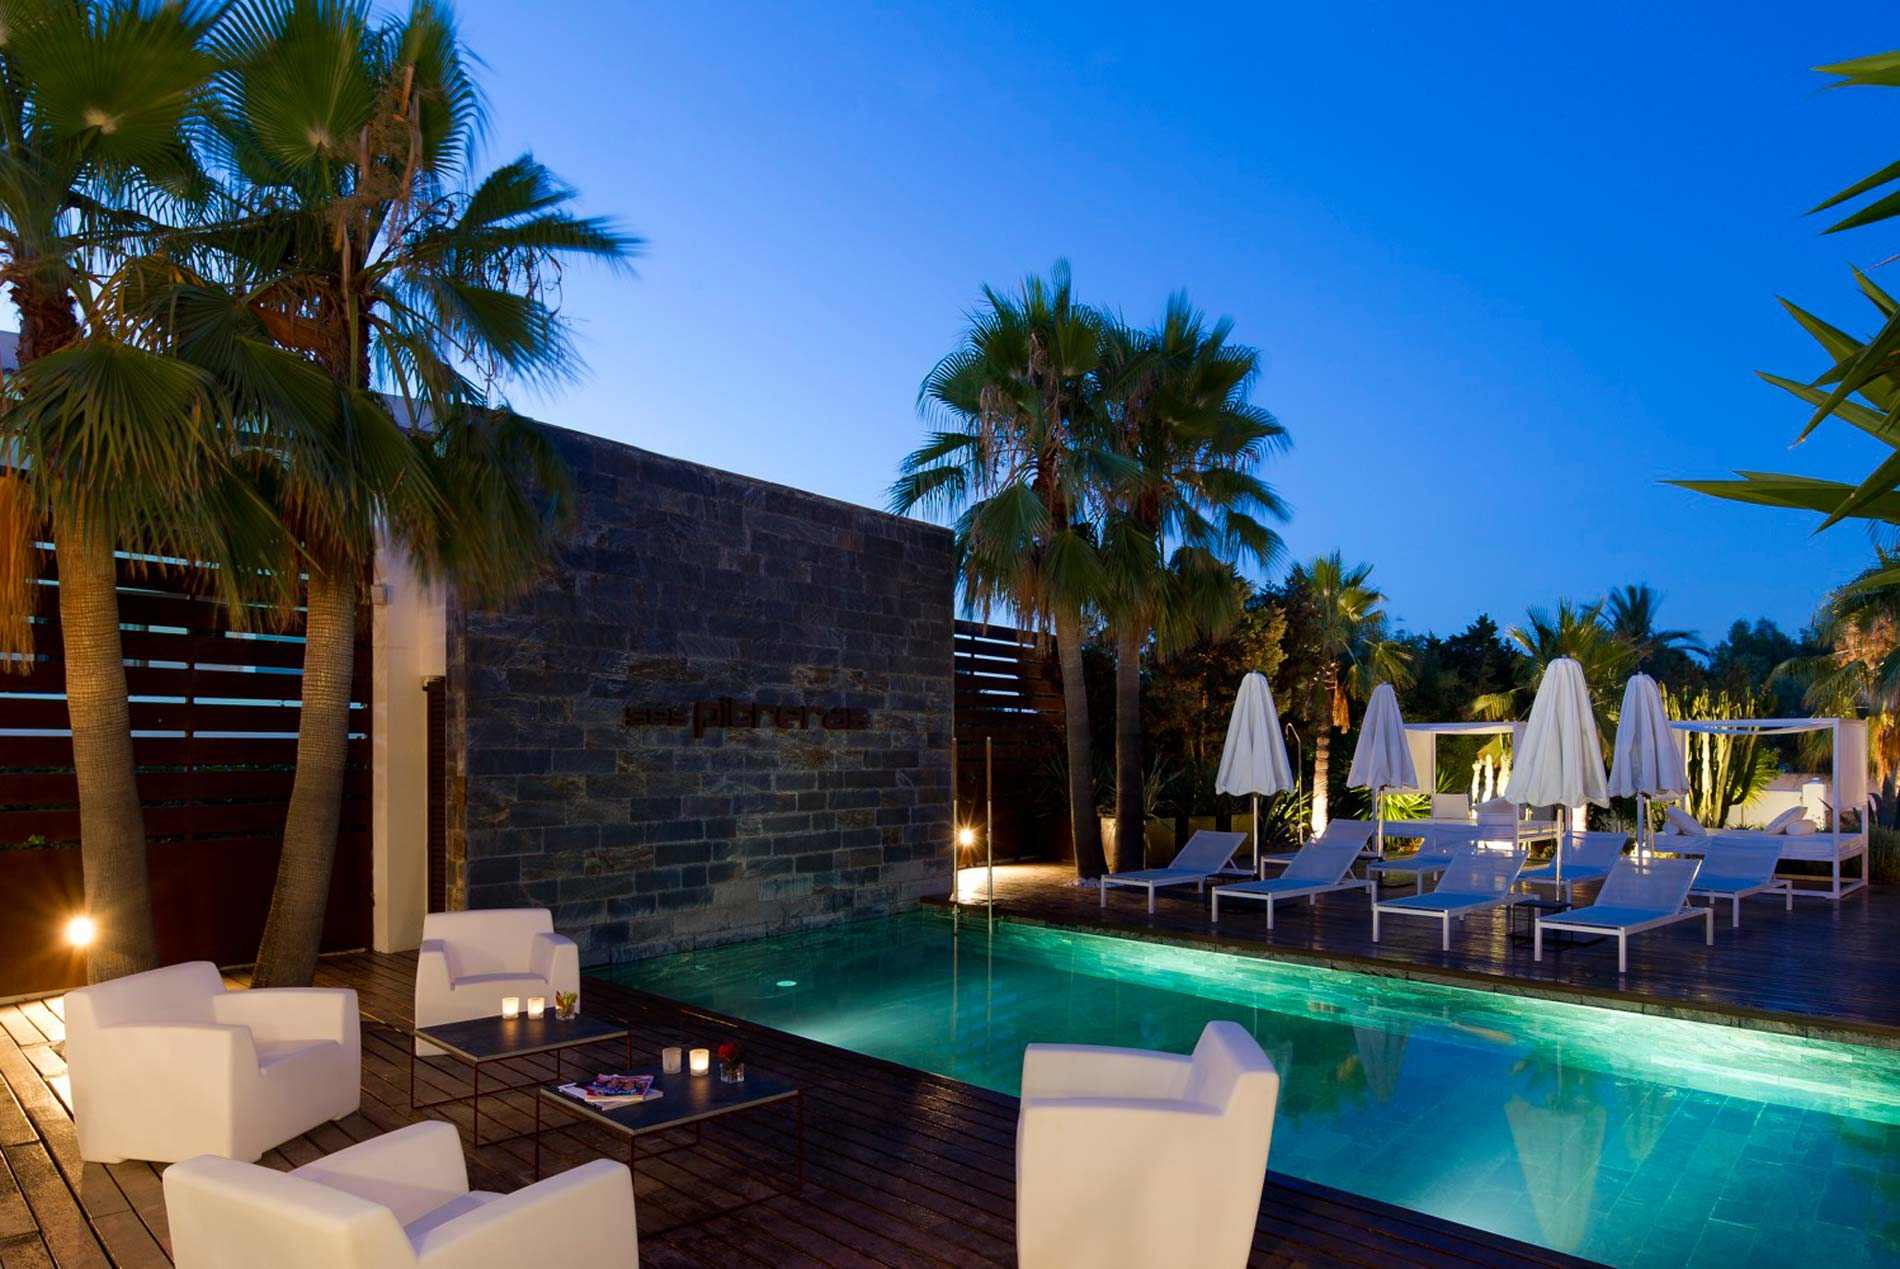 Hotel terrace with chill out in ibiza ses pitreras for What is a hotel terrace